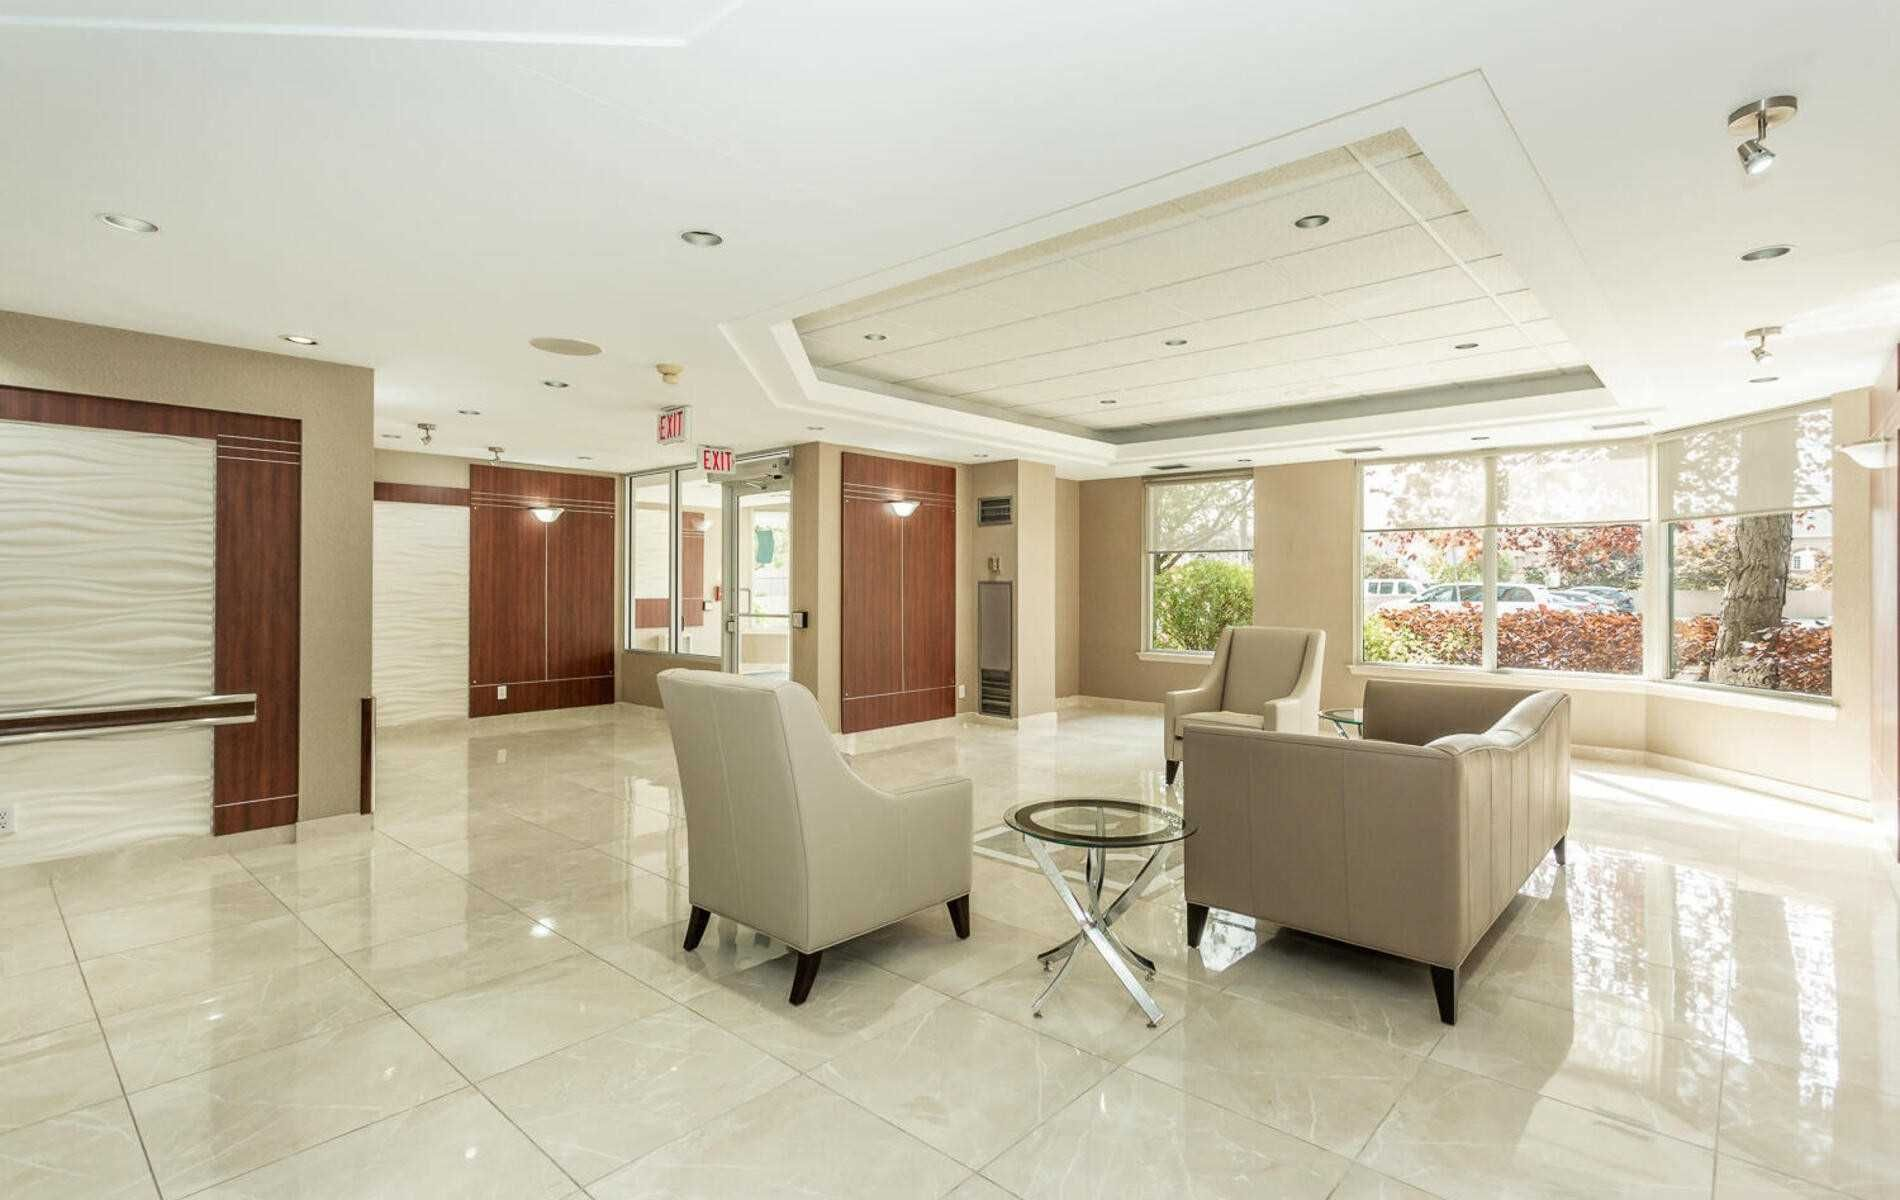 135 Hillcrest Ave, unit 1704 for sale in Toronto - image #2